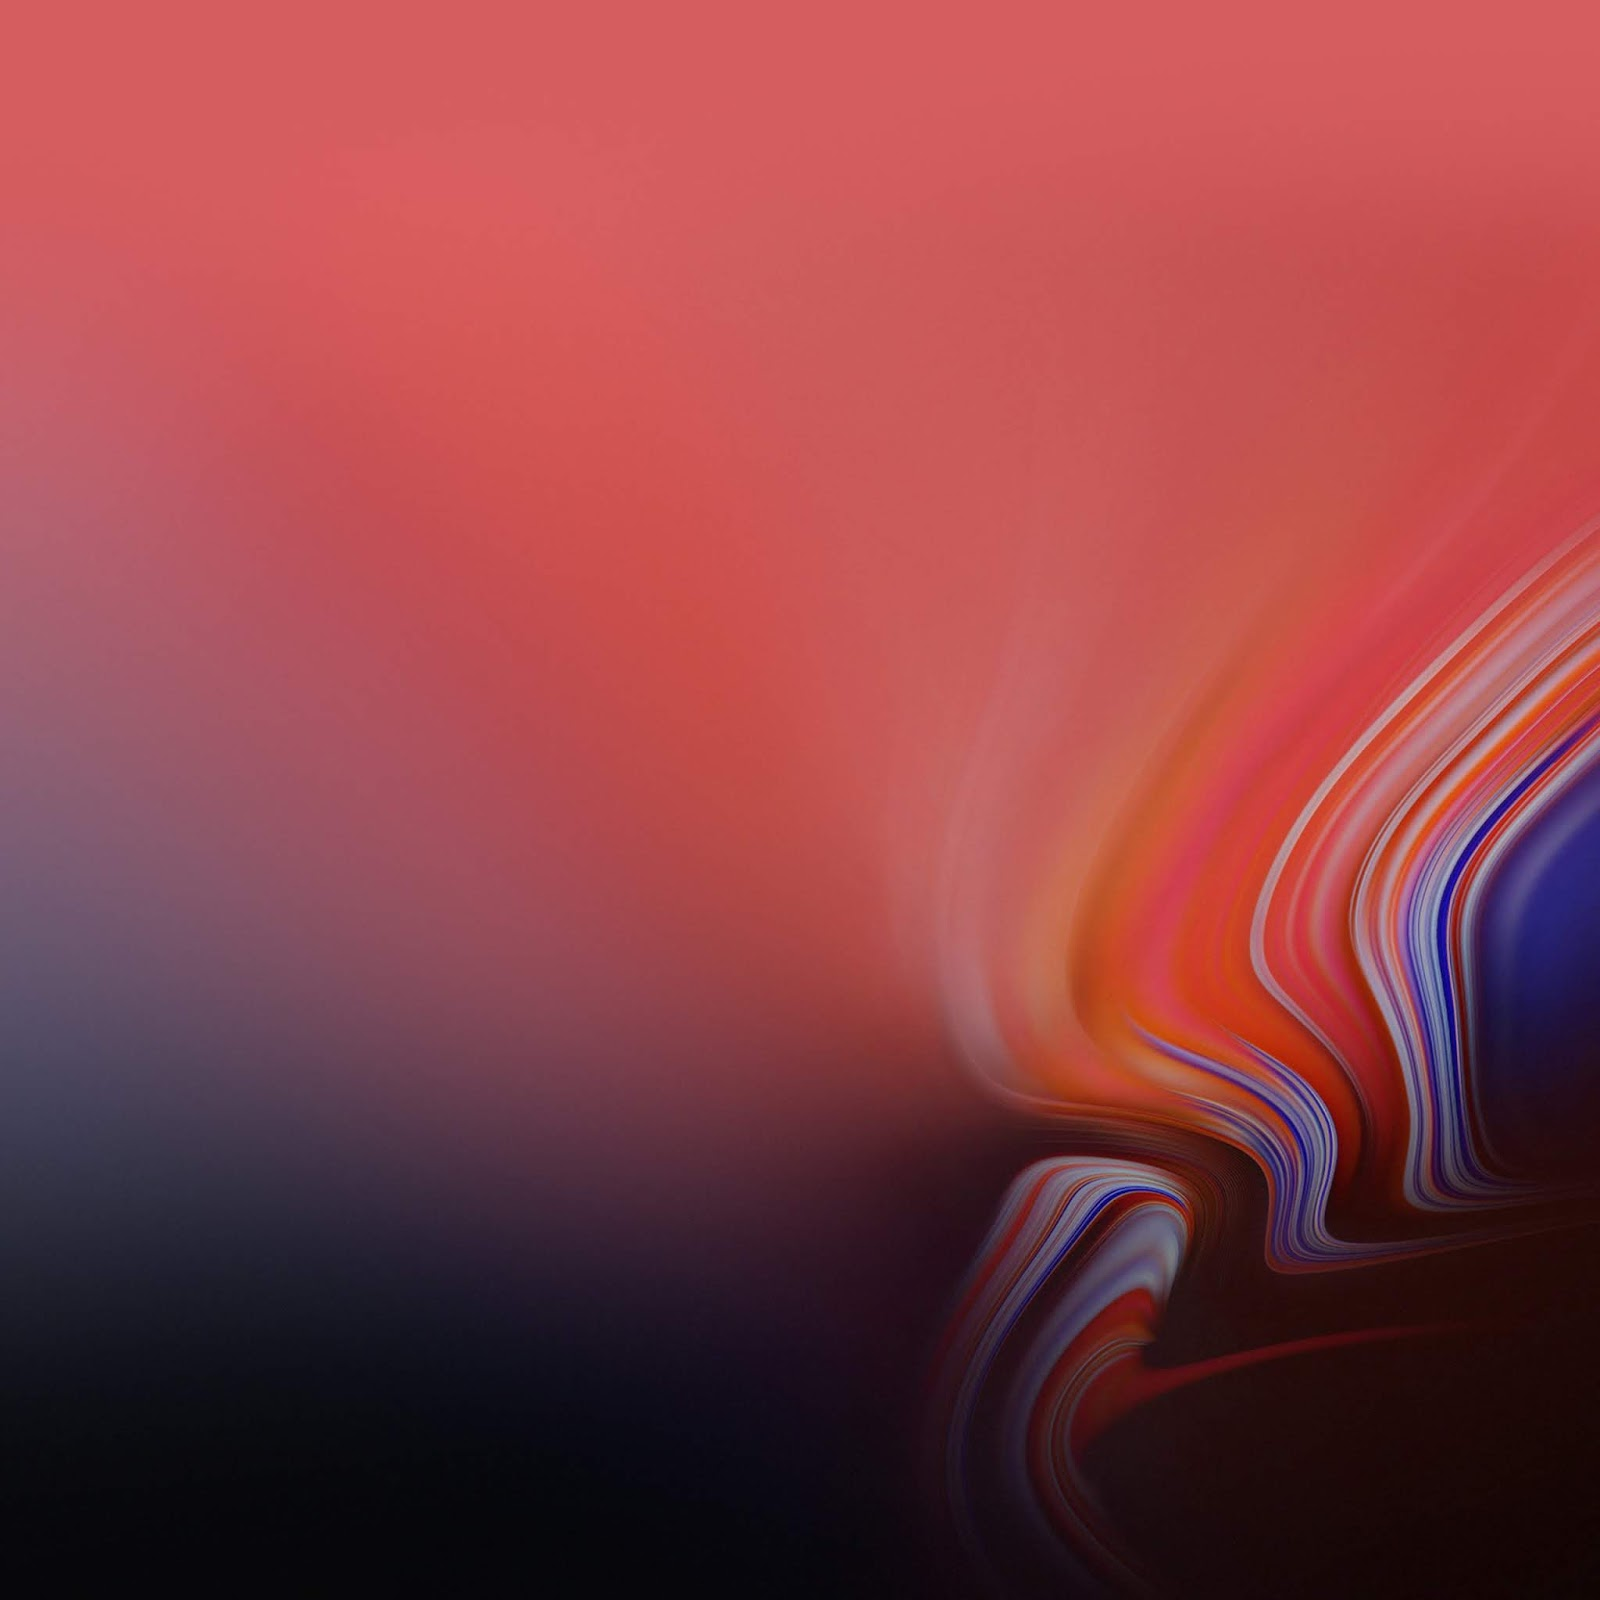 Samsung Galaxy Note 9 Full-HD Plus Wallpapers Download (Best Note 9 Wallpaper) - Androidleo